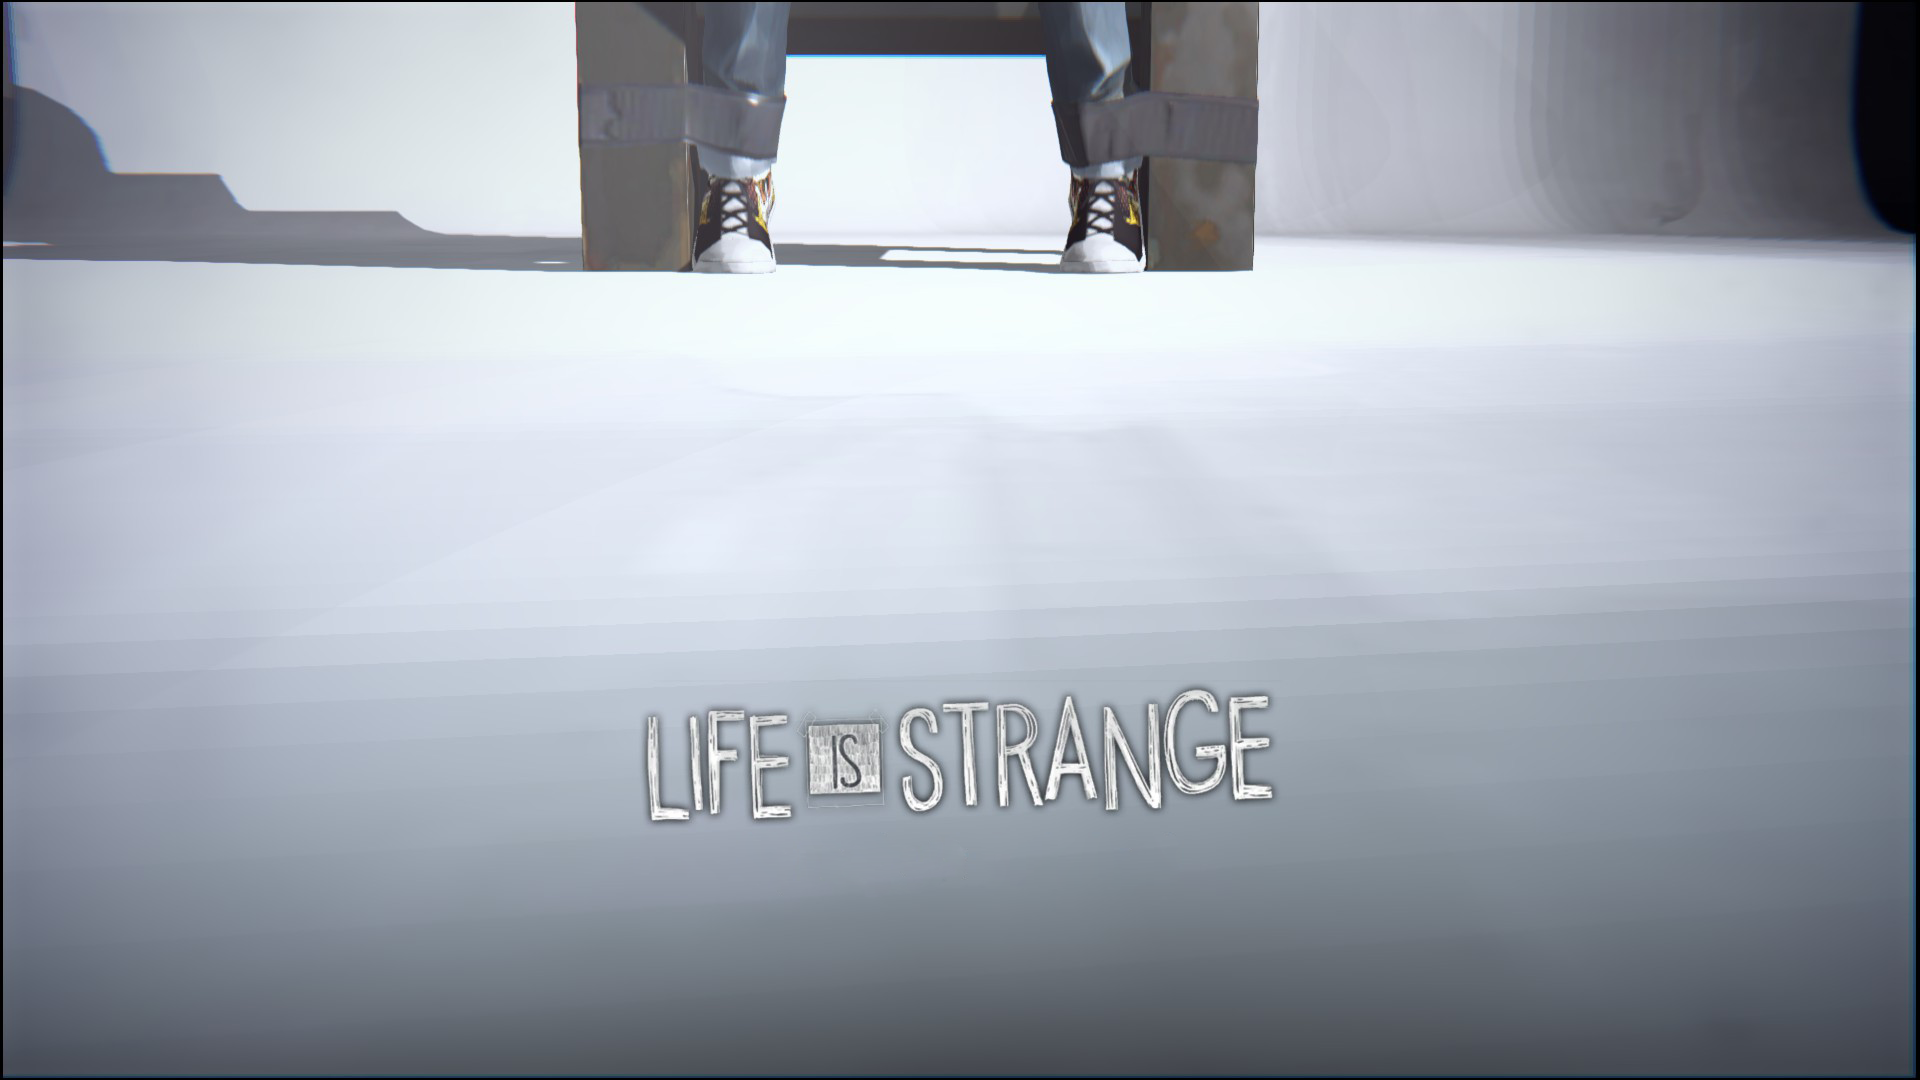 Rewound: Life is Strange (Review)